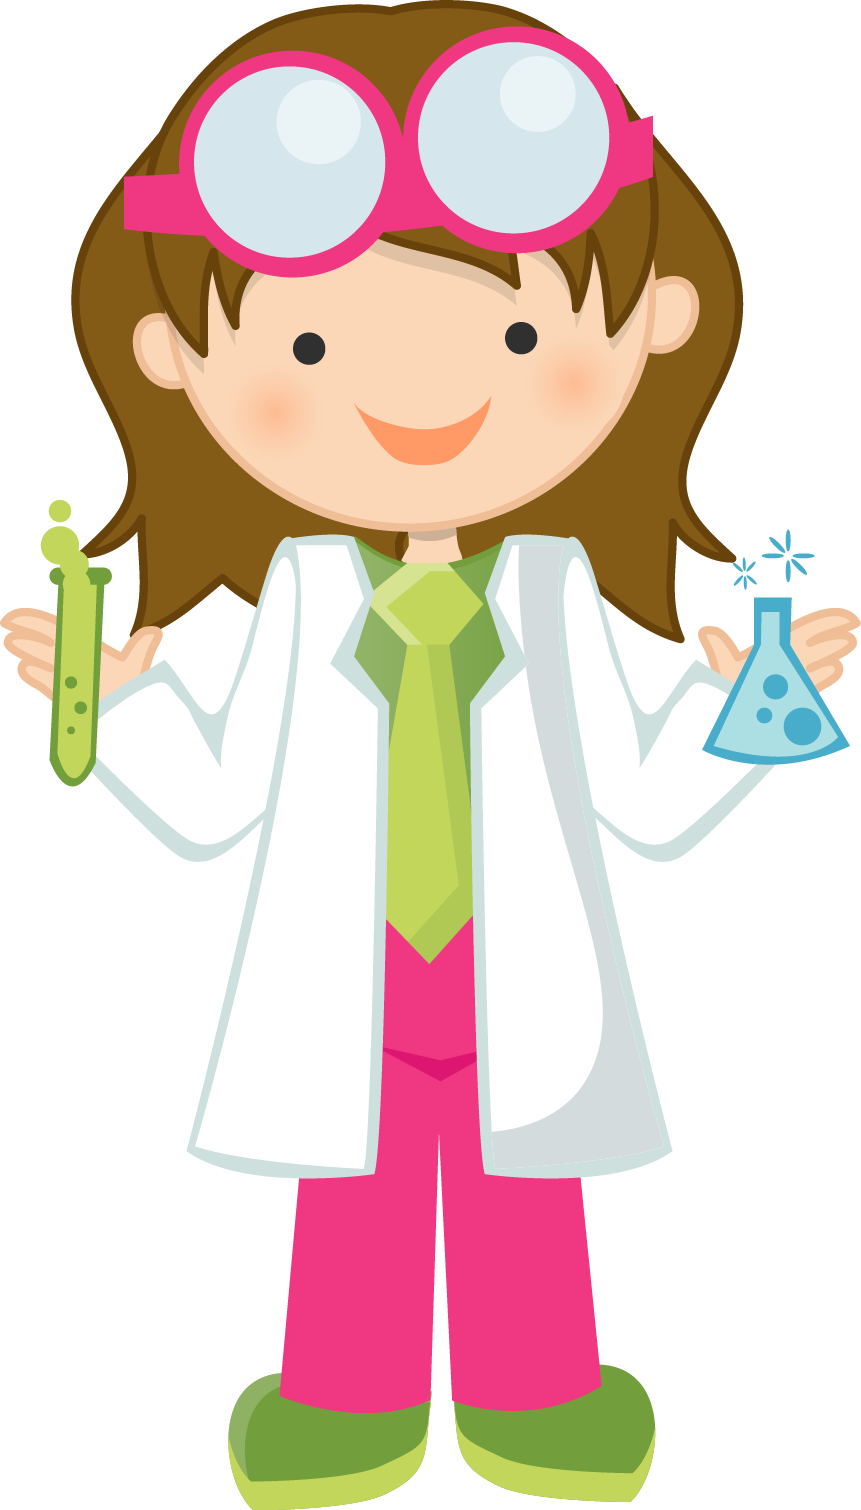 Resultado de imagen para cartoon kid scientist